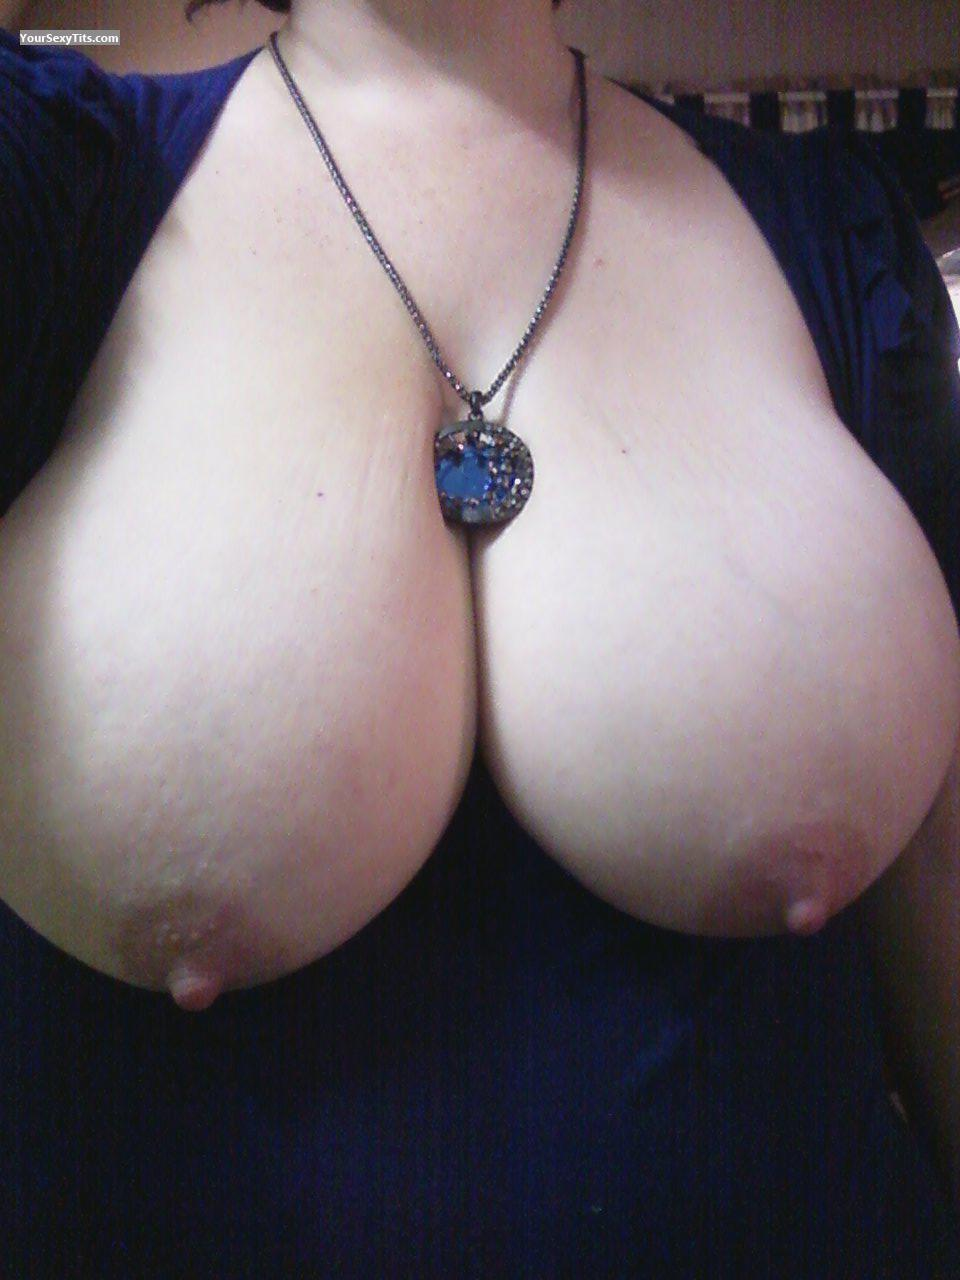 Tit Flash: My Extremely Big Tits (Selfie) - PeachesnCream from United States